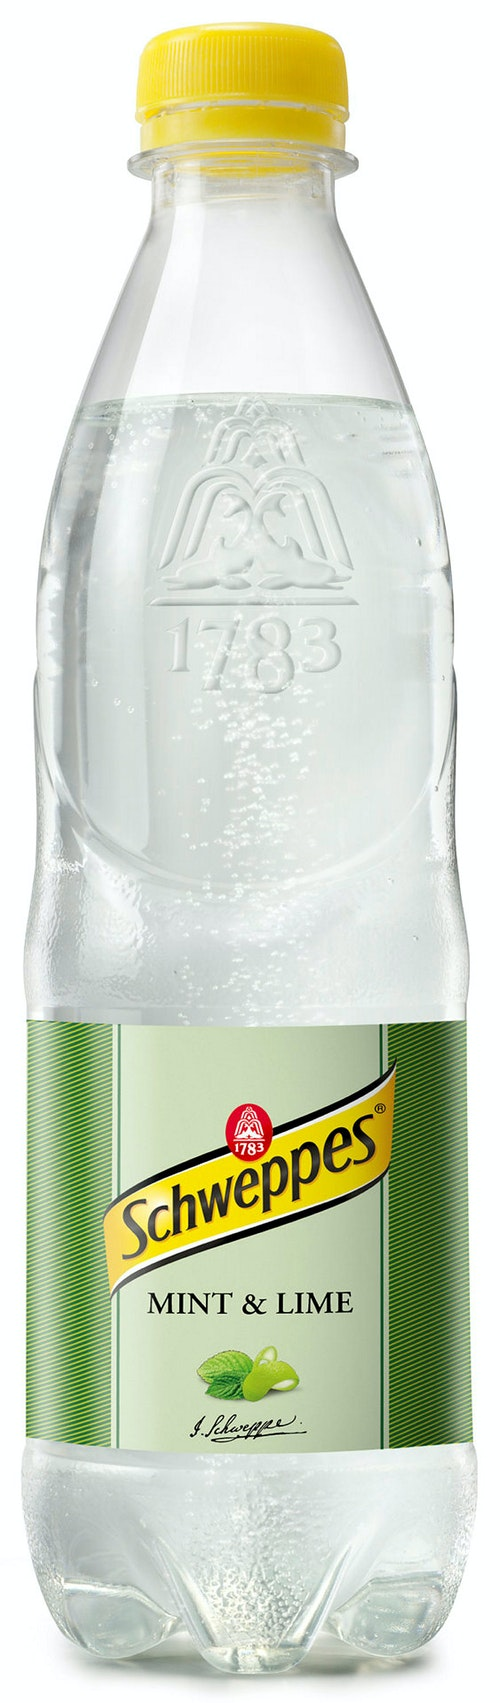 Schweppes Mint & Lime 0,5 l